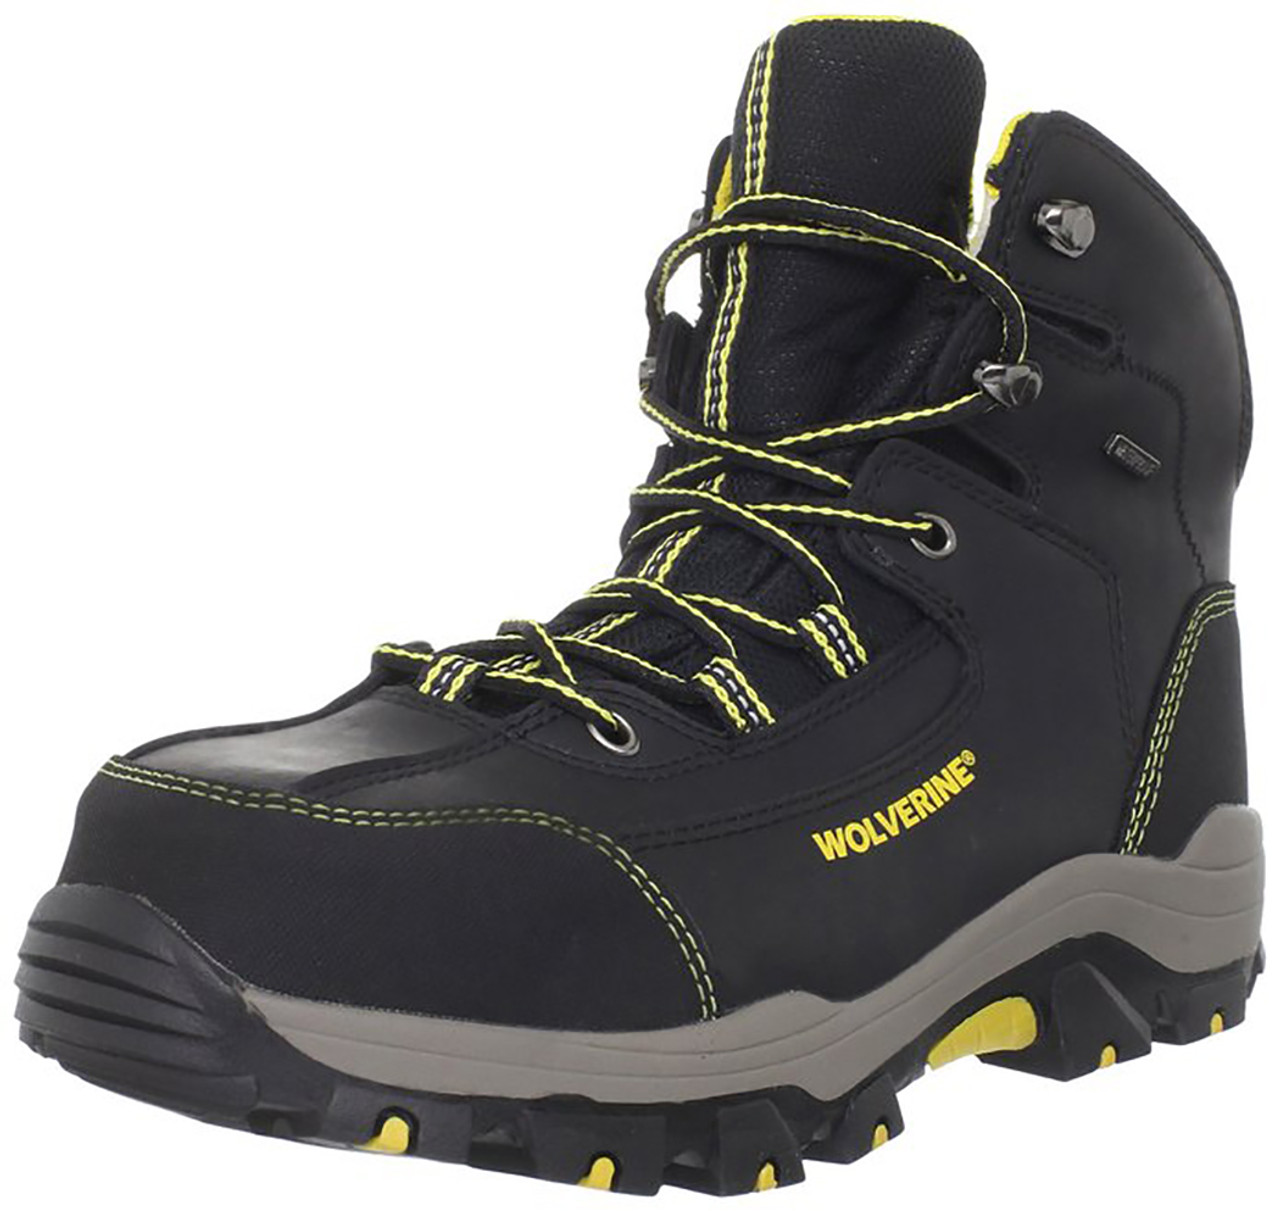 d7755b59619 Wolverine W10075 Mens Waterproof Composite Toe Bucklin Hiking Boot